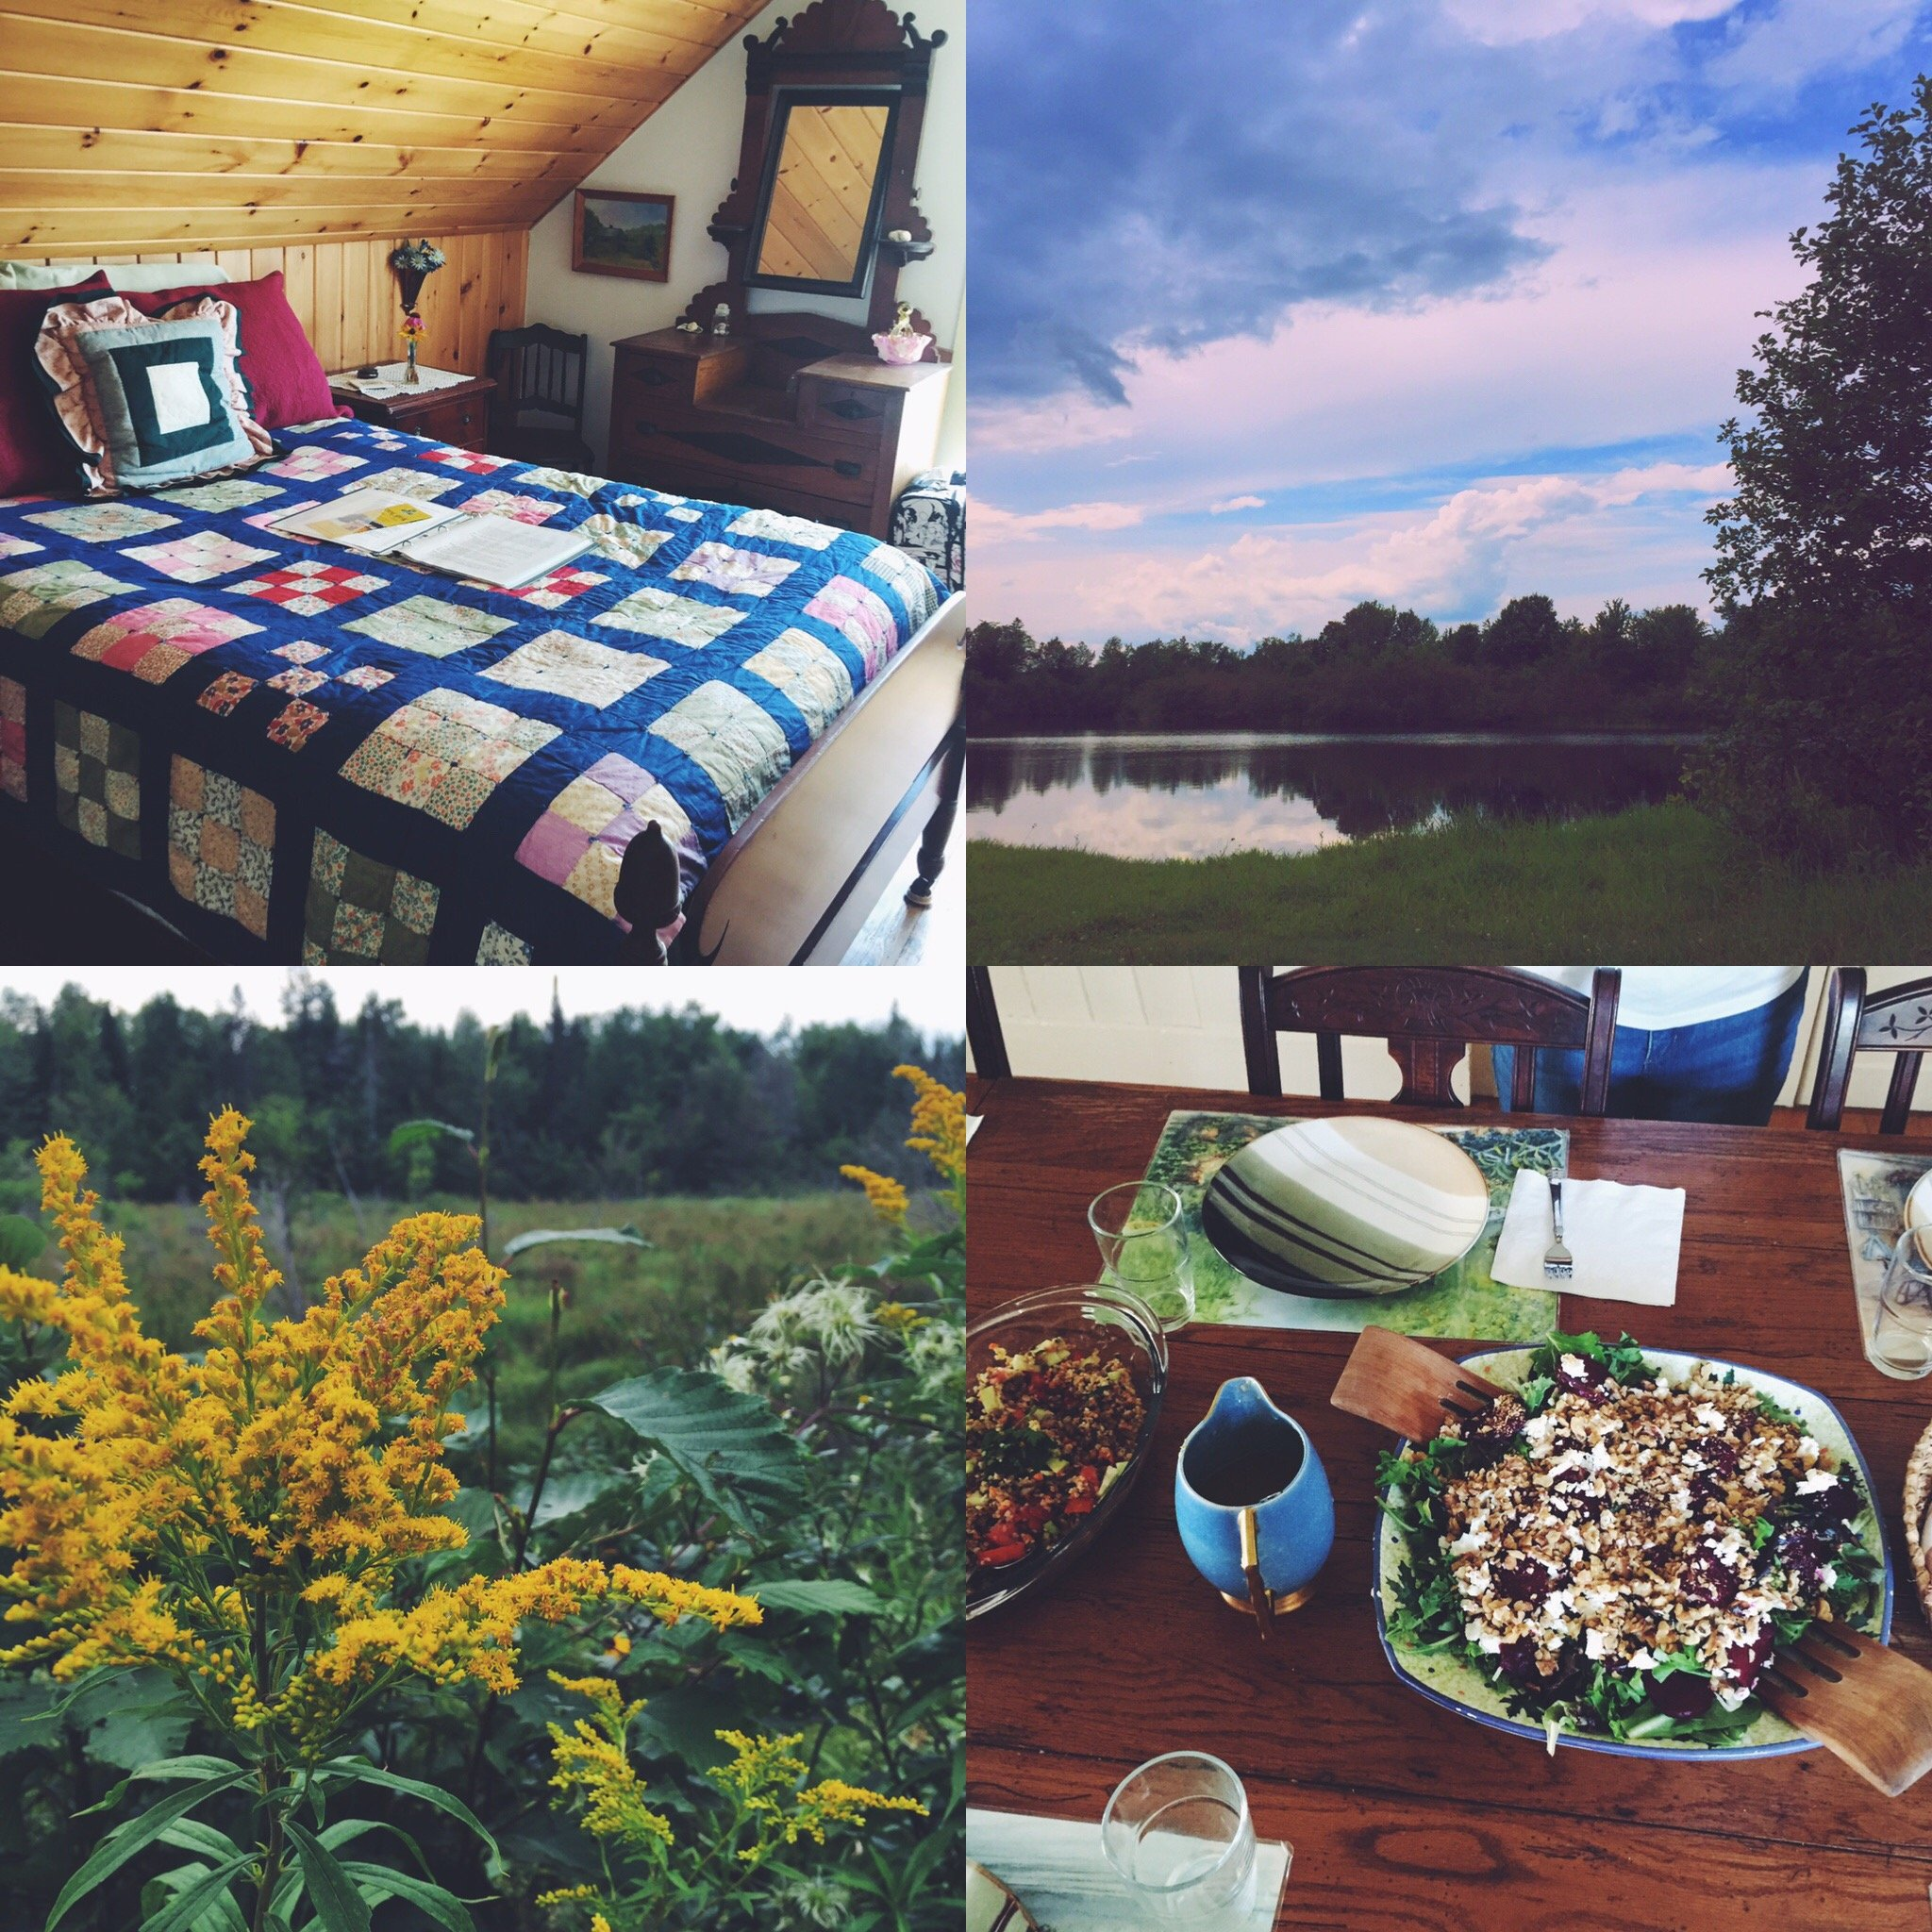 local swimming hole, wild flowers and smaler guest room plus food!